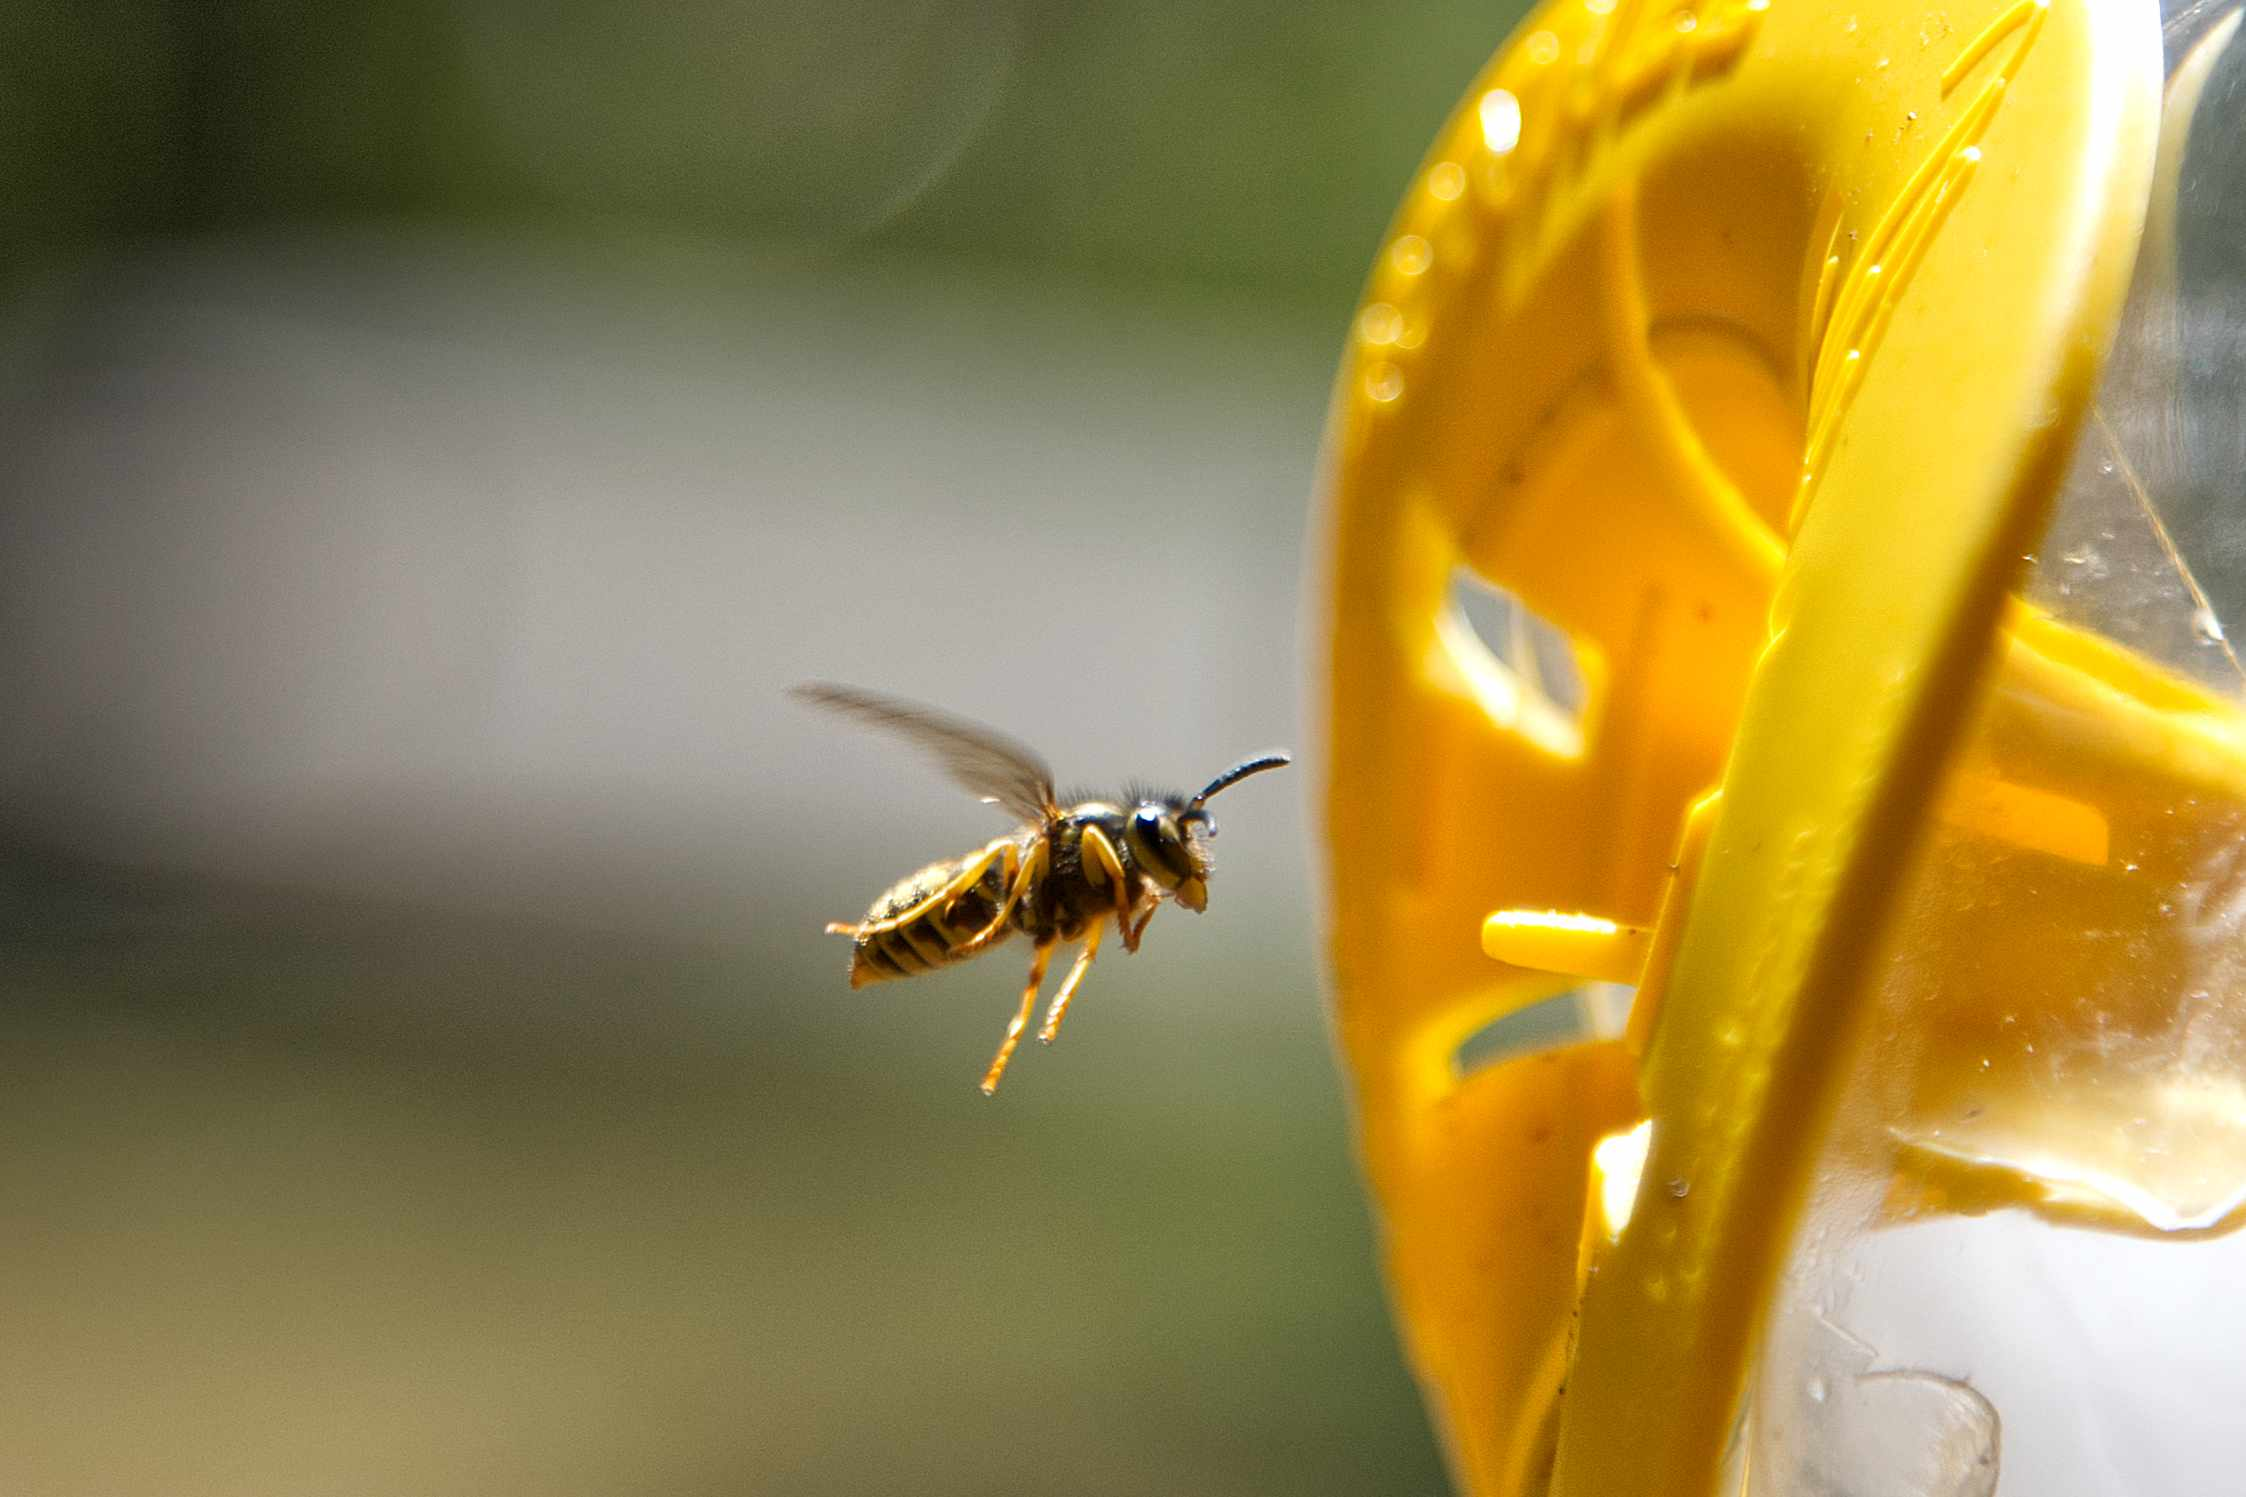 yellow jacket wasp hovers next to bright yellow plastic bird feeder